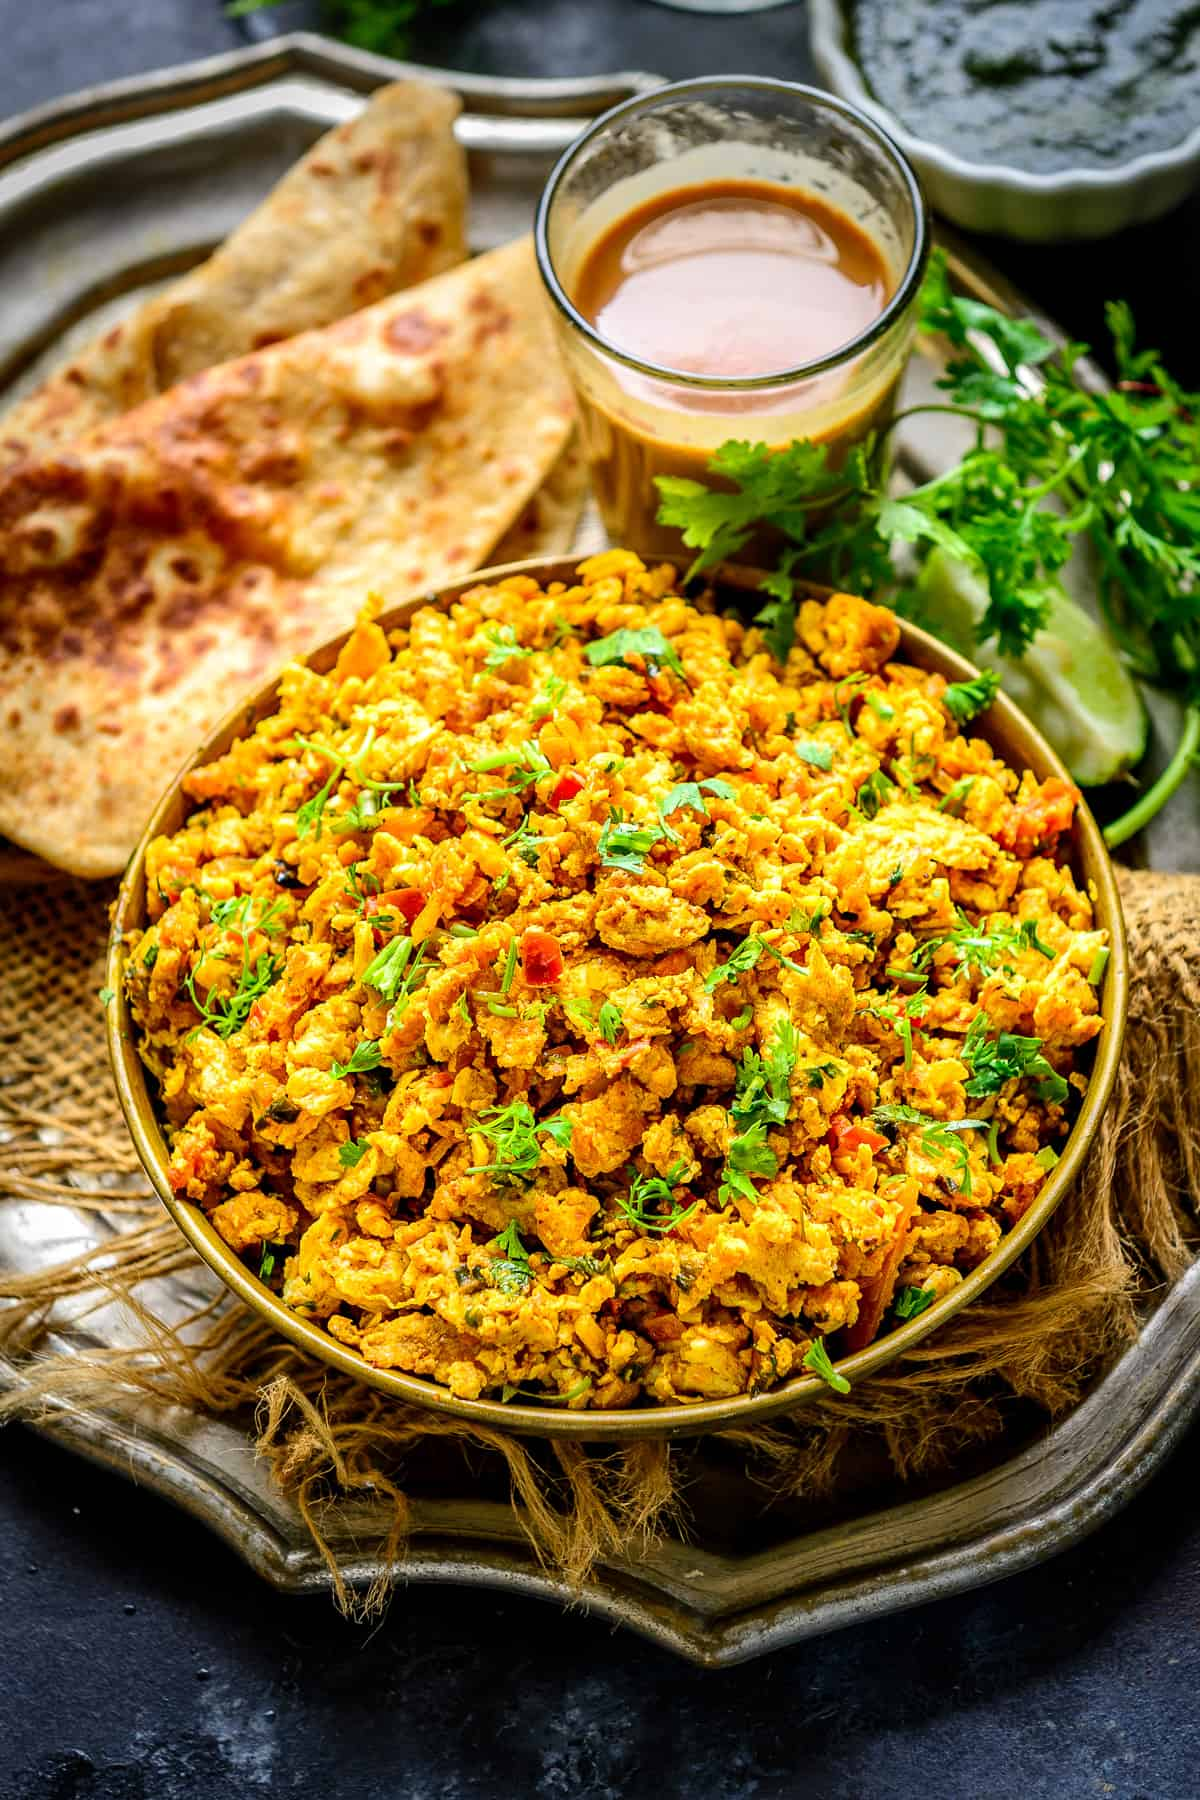 Egg Bhurji served in a bowl.